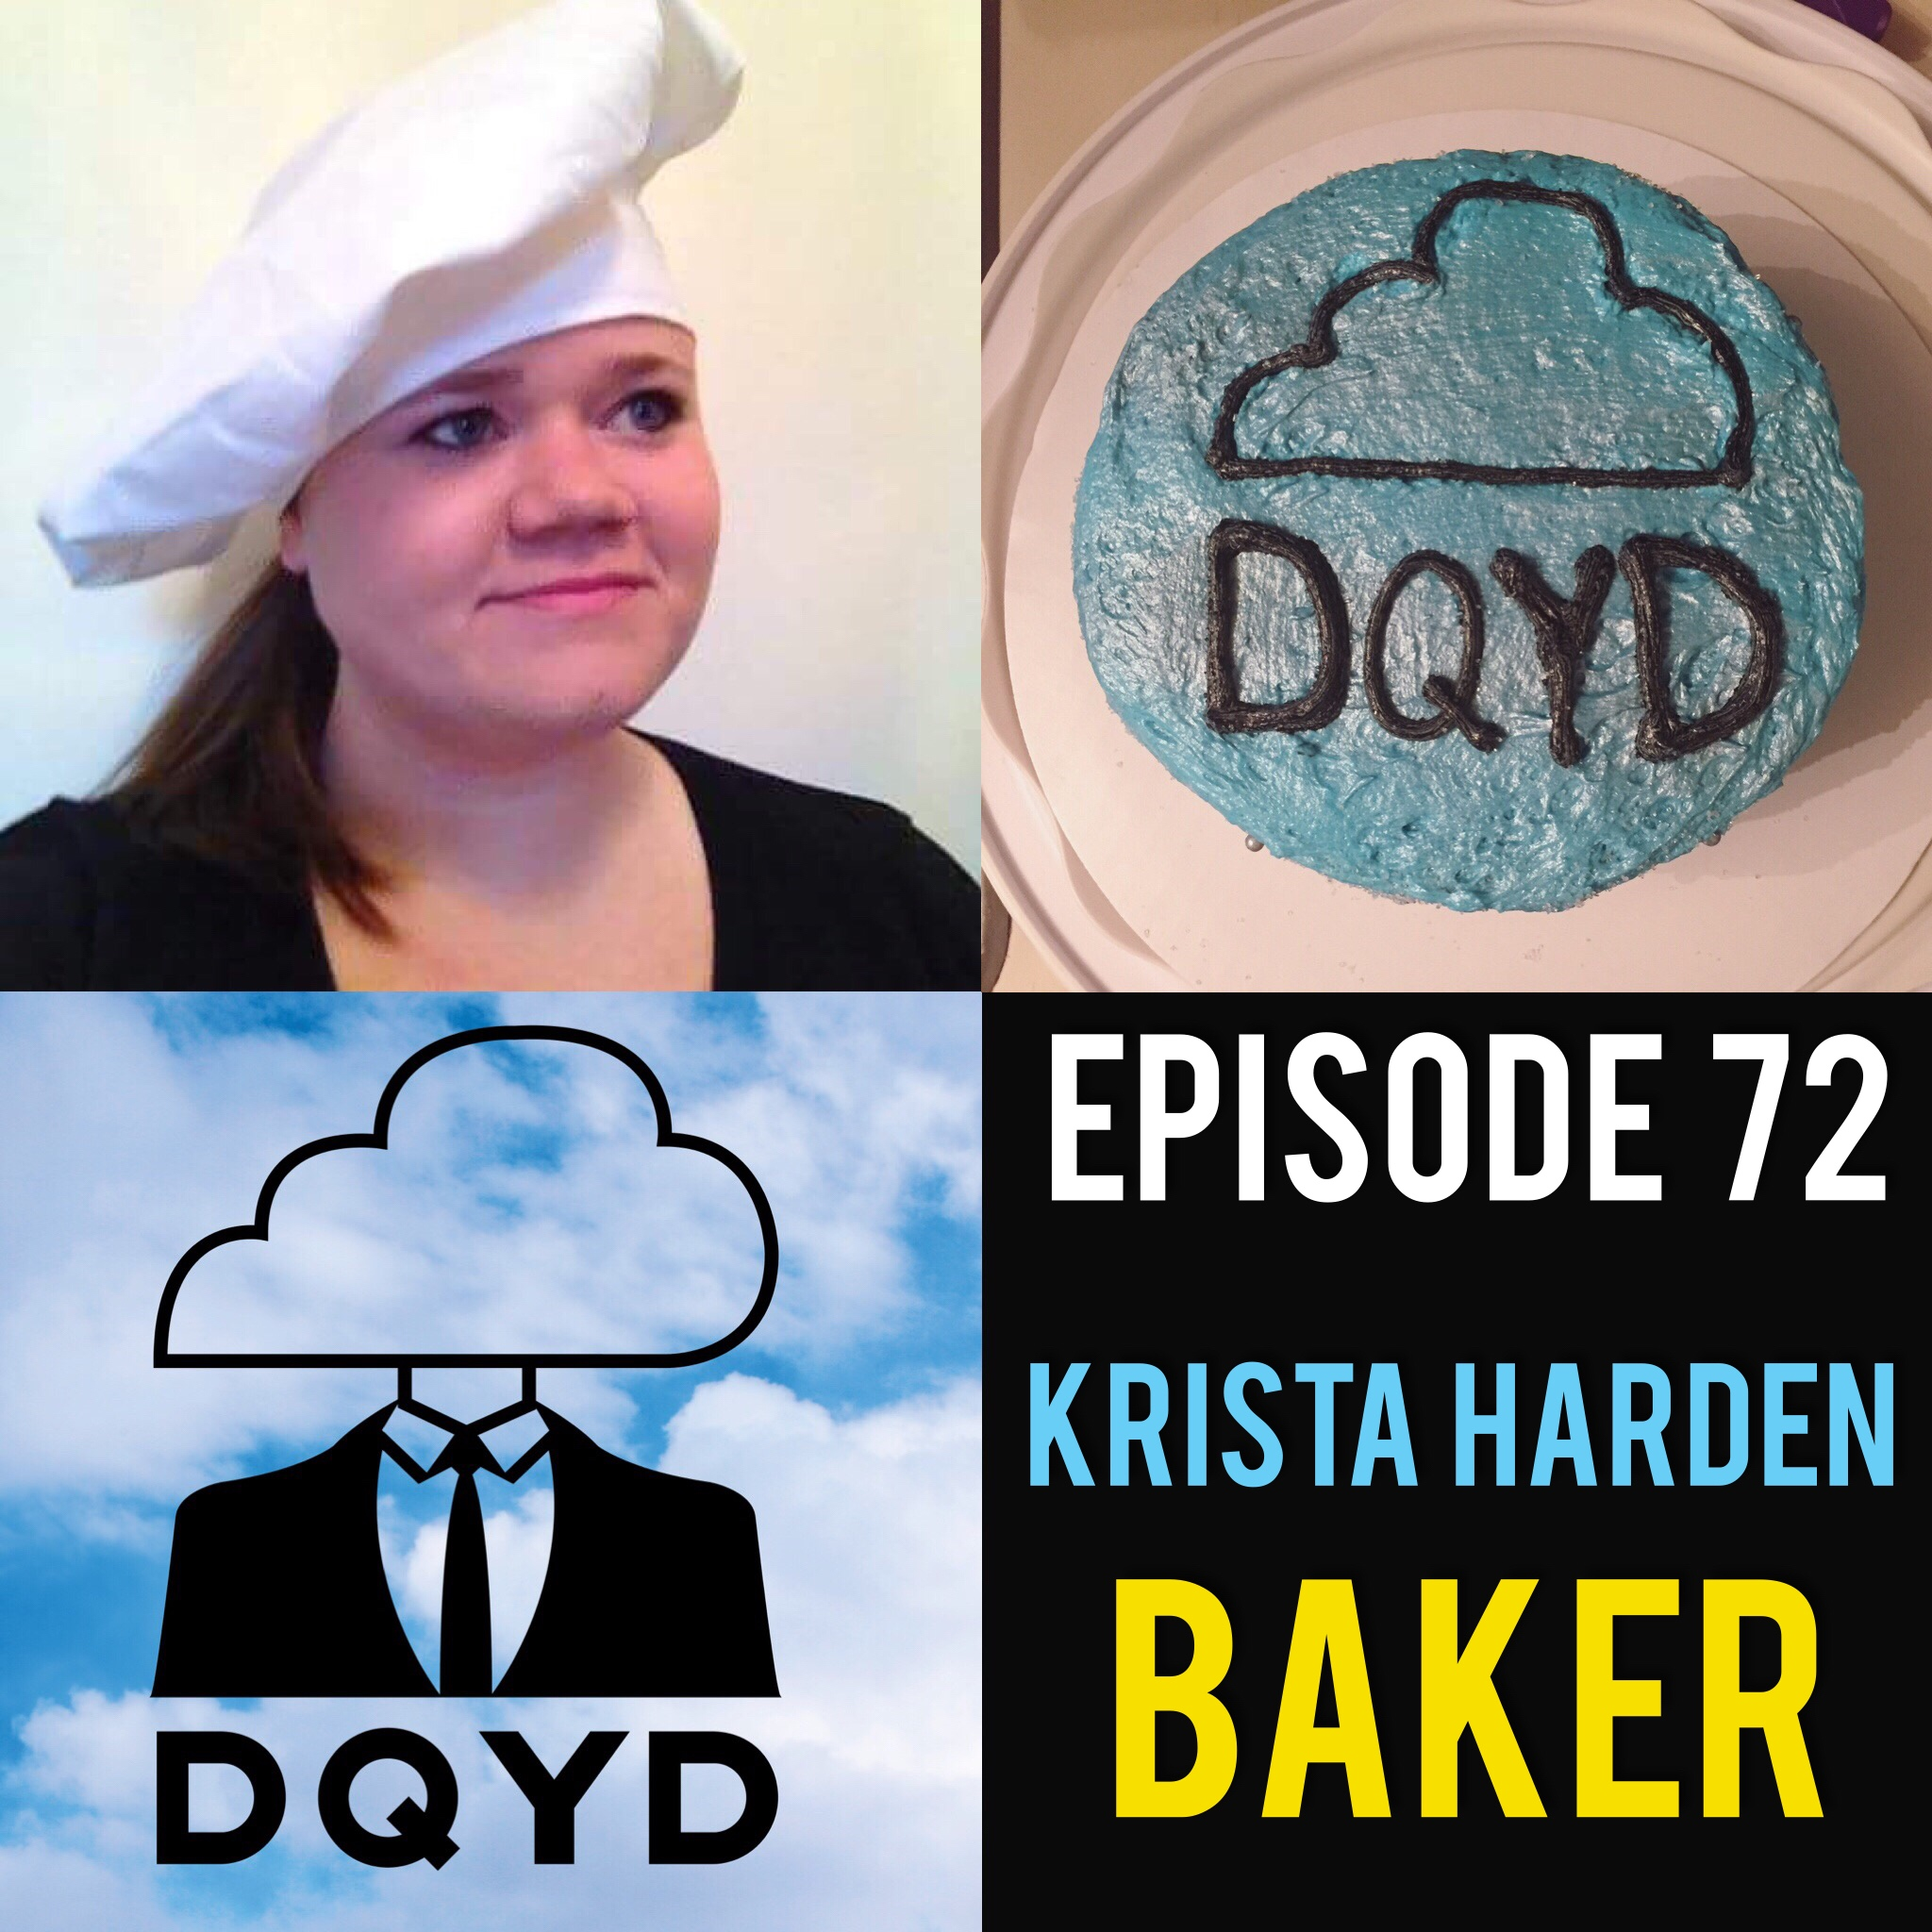 """Episode 72 with Baker: Krista Harden! Krista shares with us her trial and errors in the kitchen and how she learned to not only bake a delisious cake but to make it look fantastic too. We discuss bake goods found around the world, dreams of a desert food truck and tips for the kitchen.    Sound of the week: """"Right City"""" by Gentlemen and Scholars! Download their new album now! https://gentlemenandscholars1.bandcamp.com/"""